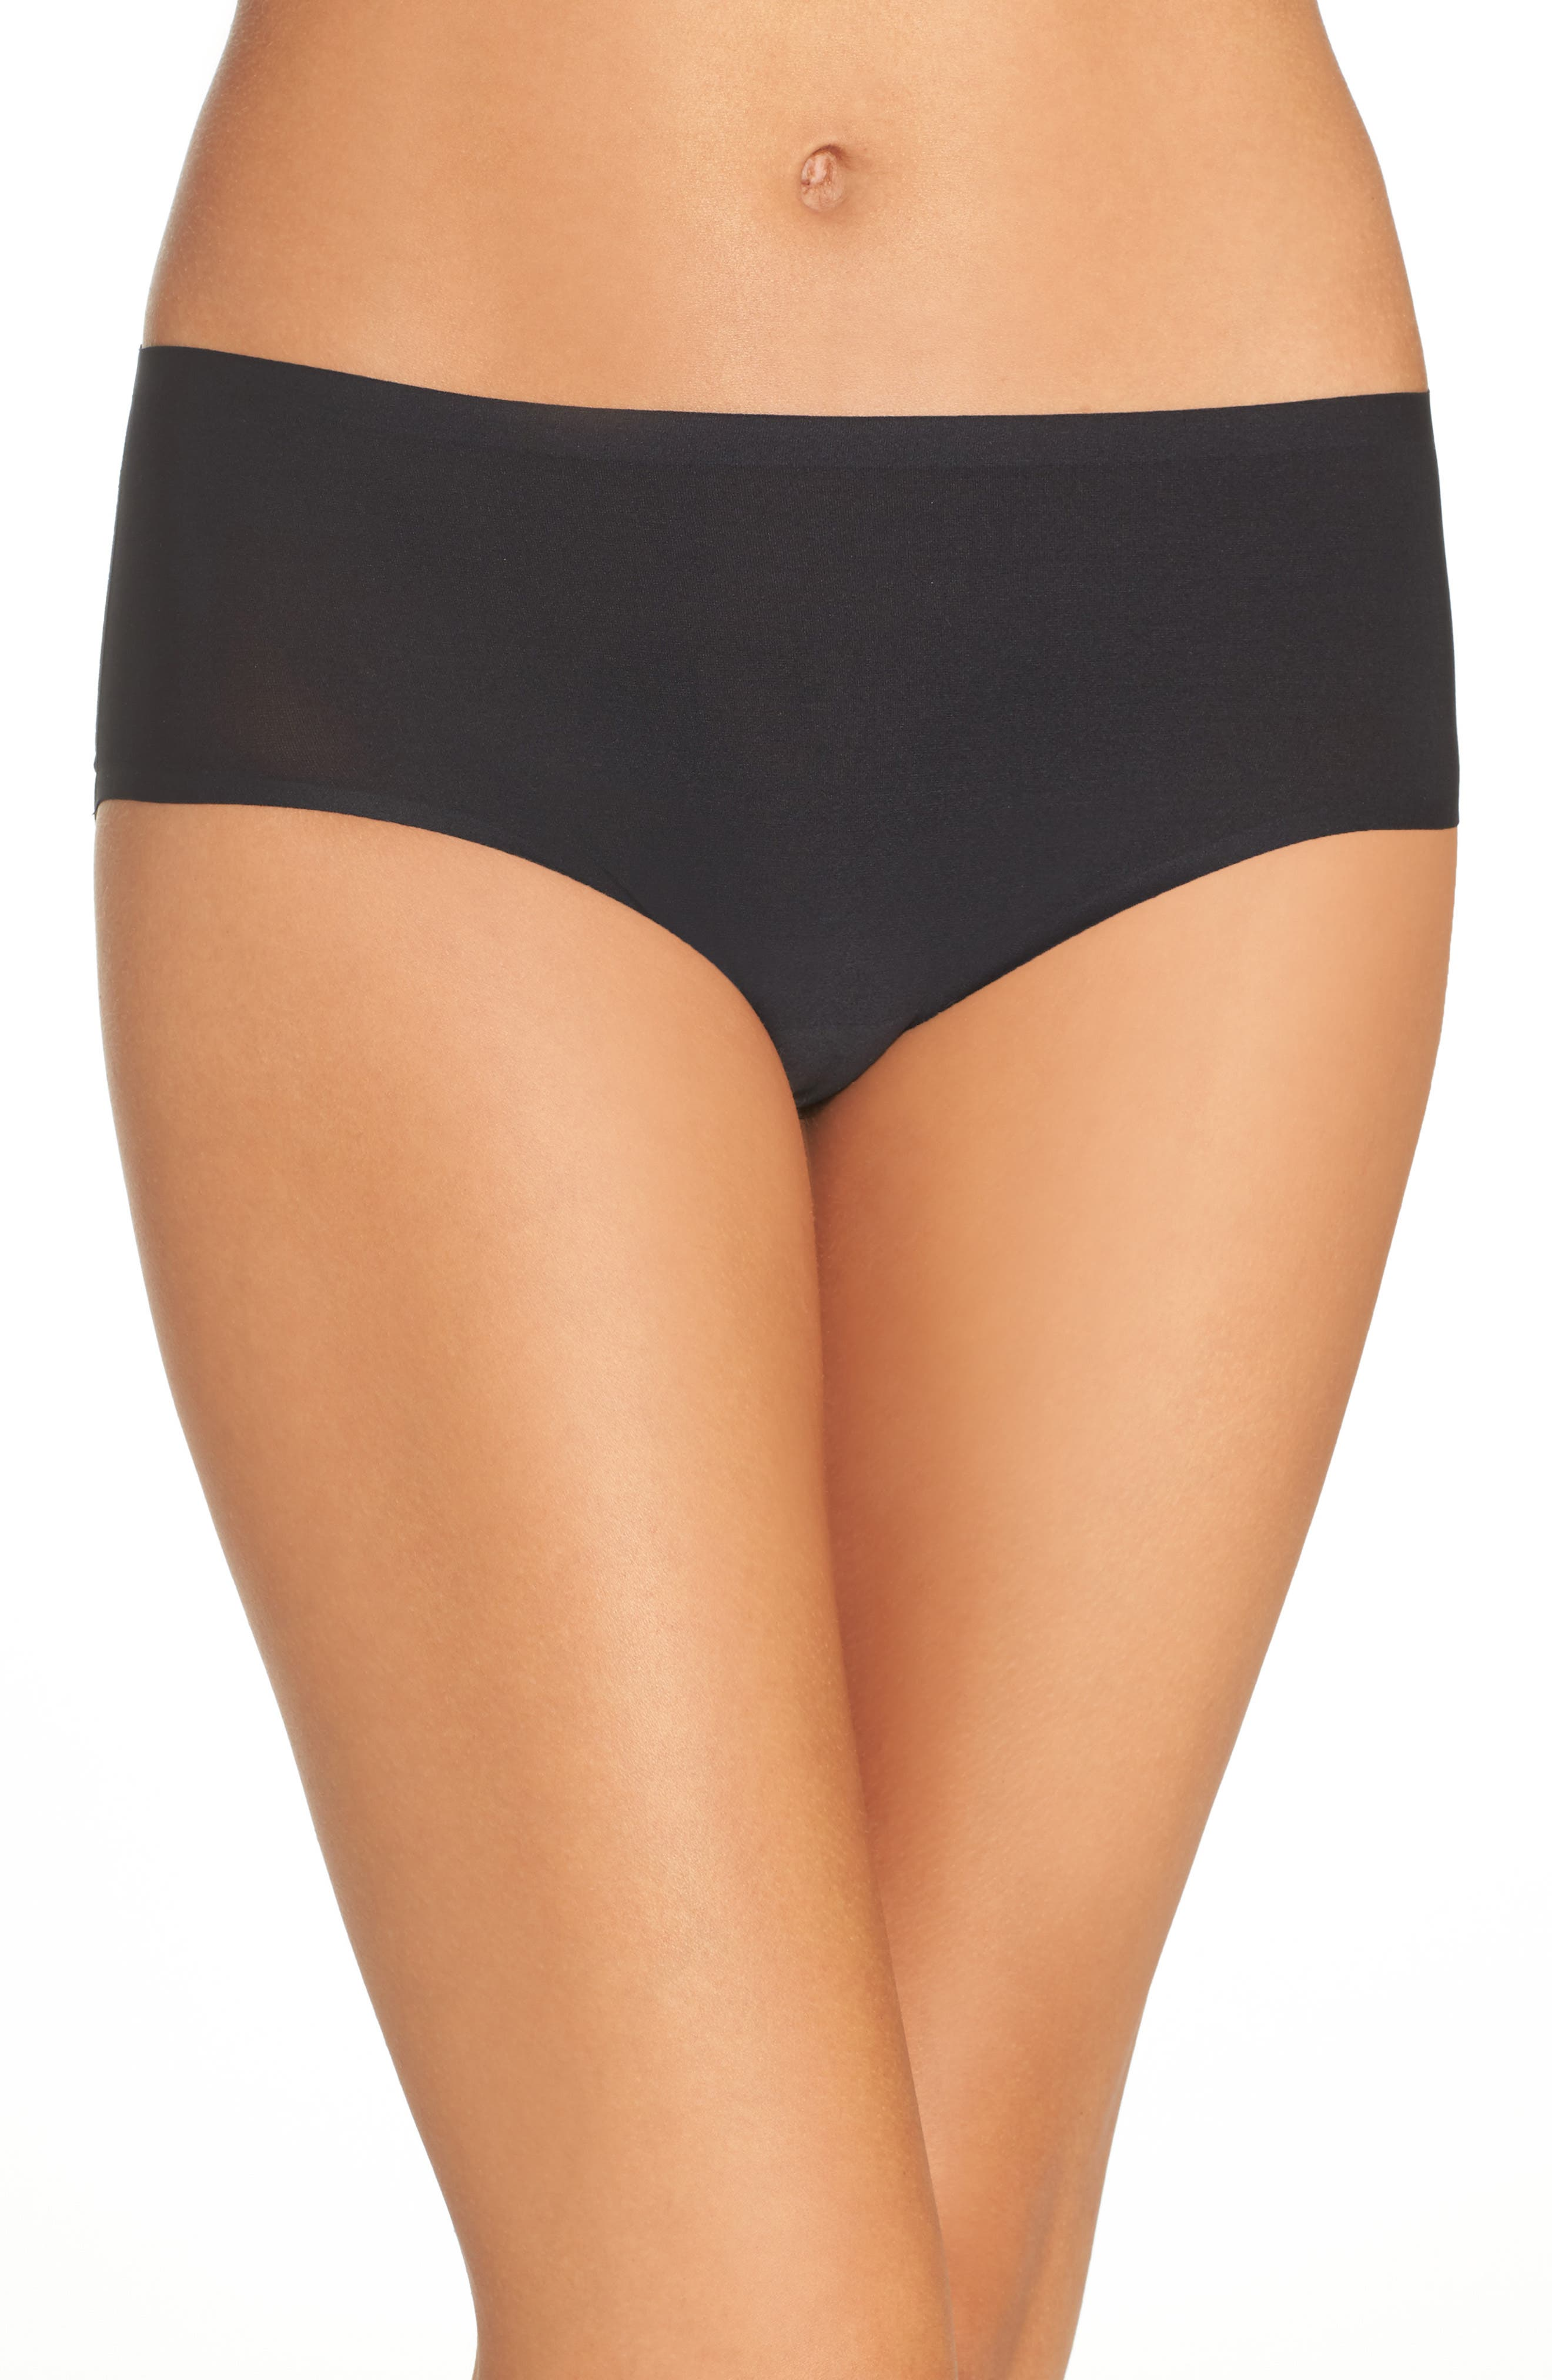 Chantelle Lingerie Soft Stretch Seamless Hipster Panties (Any 3 for $48)